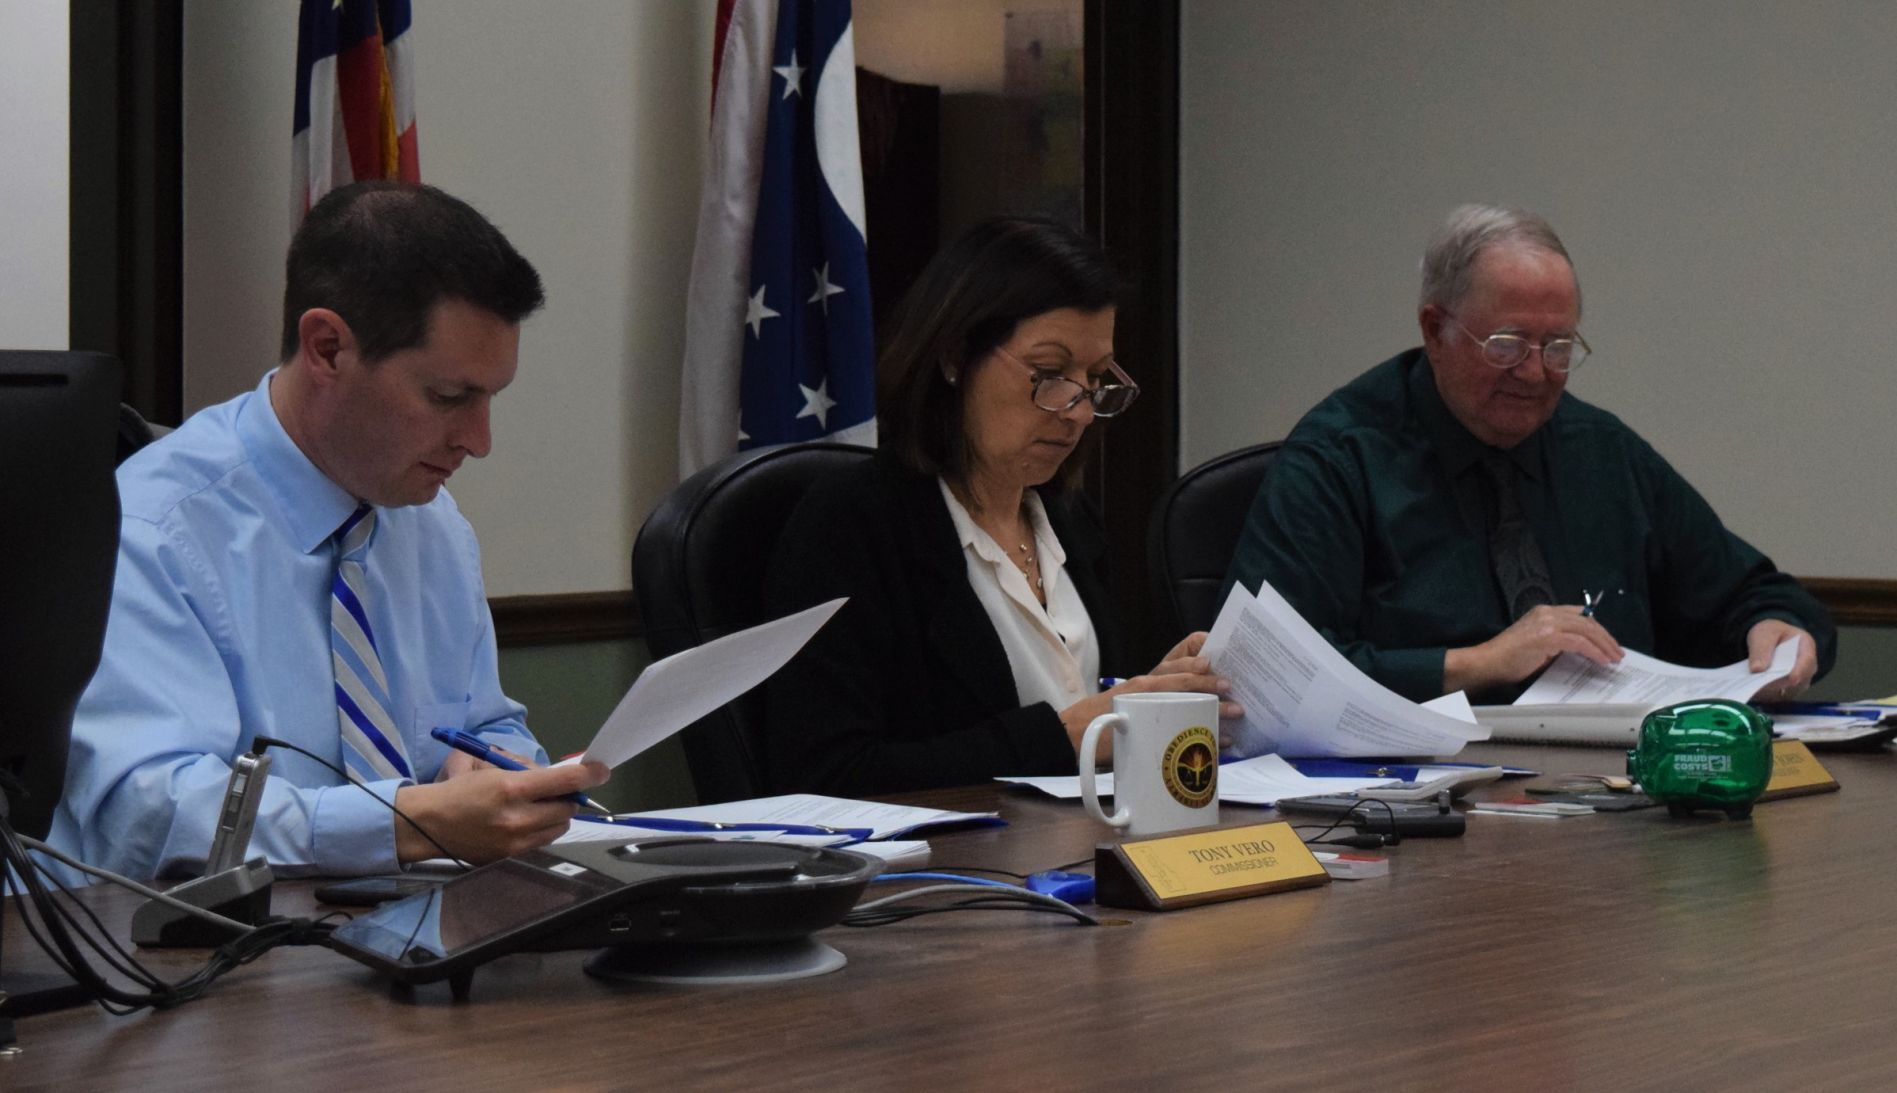 Richland County commissioners question Mansfield Municipal Court cost increases